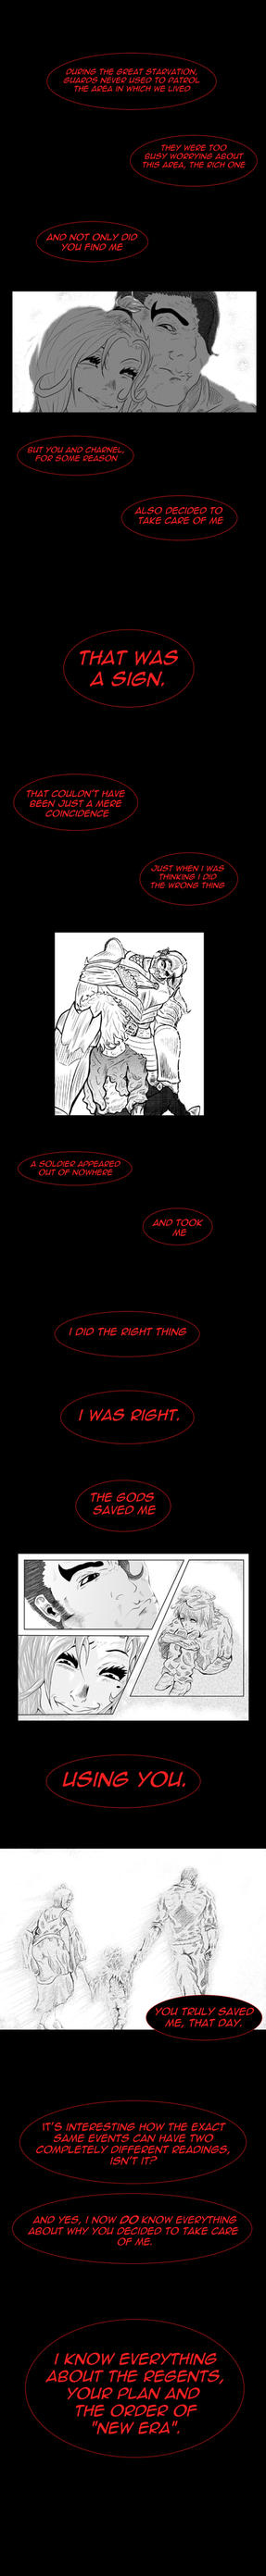 Mark of Darkness Ch 3: What Actually Happened - p4 by Dex91